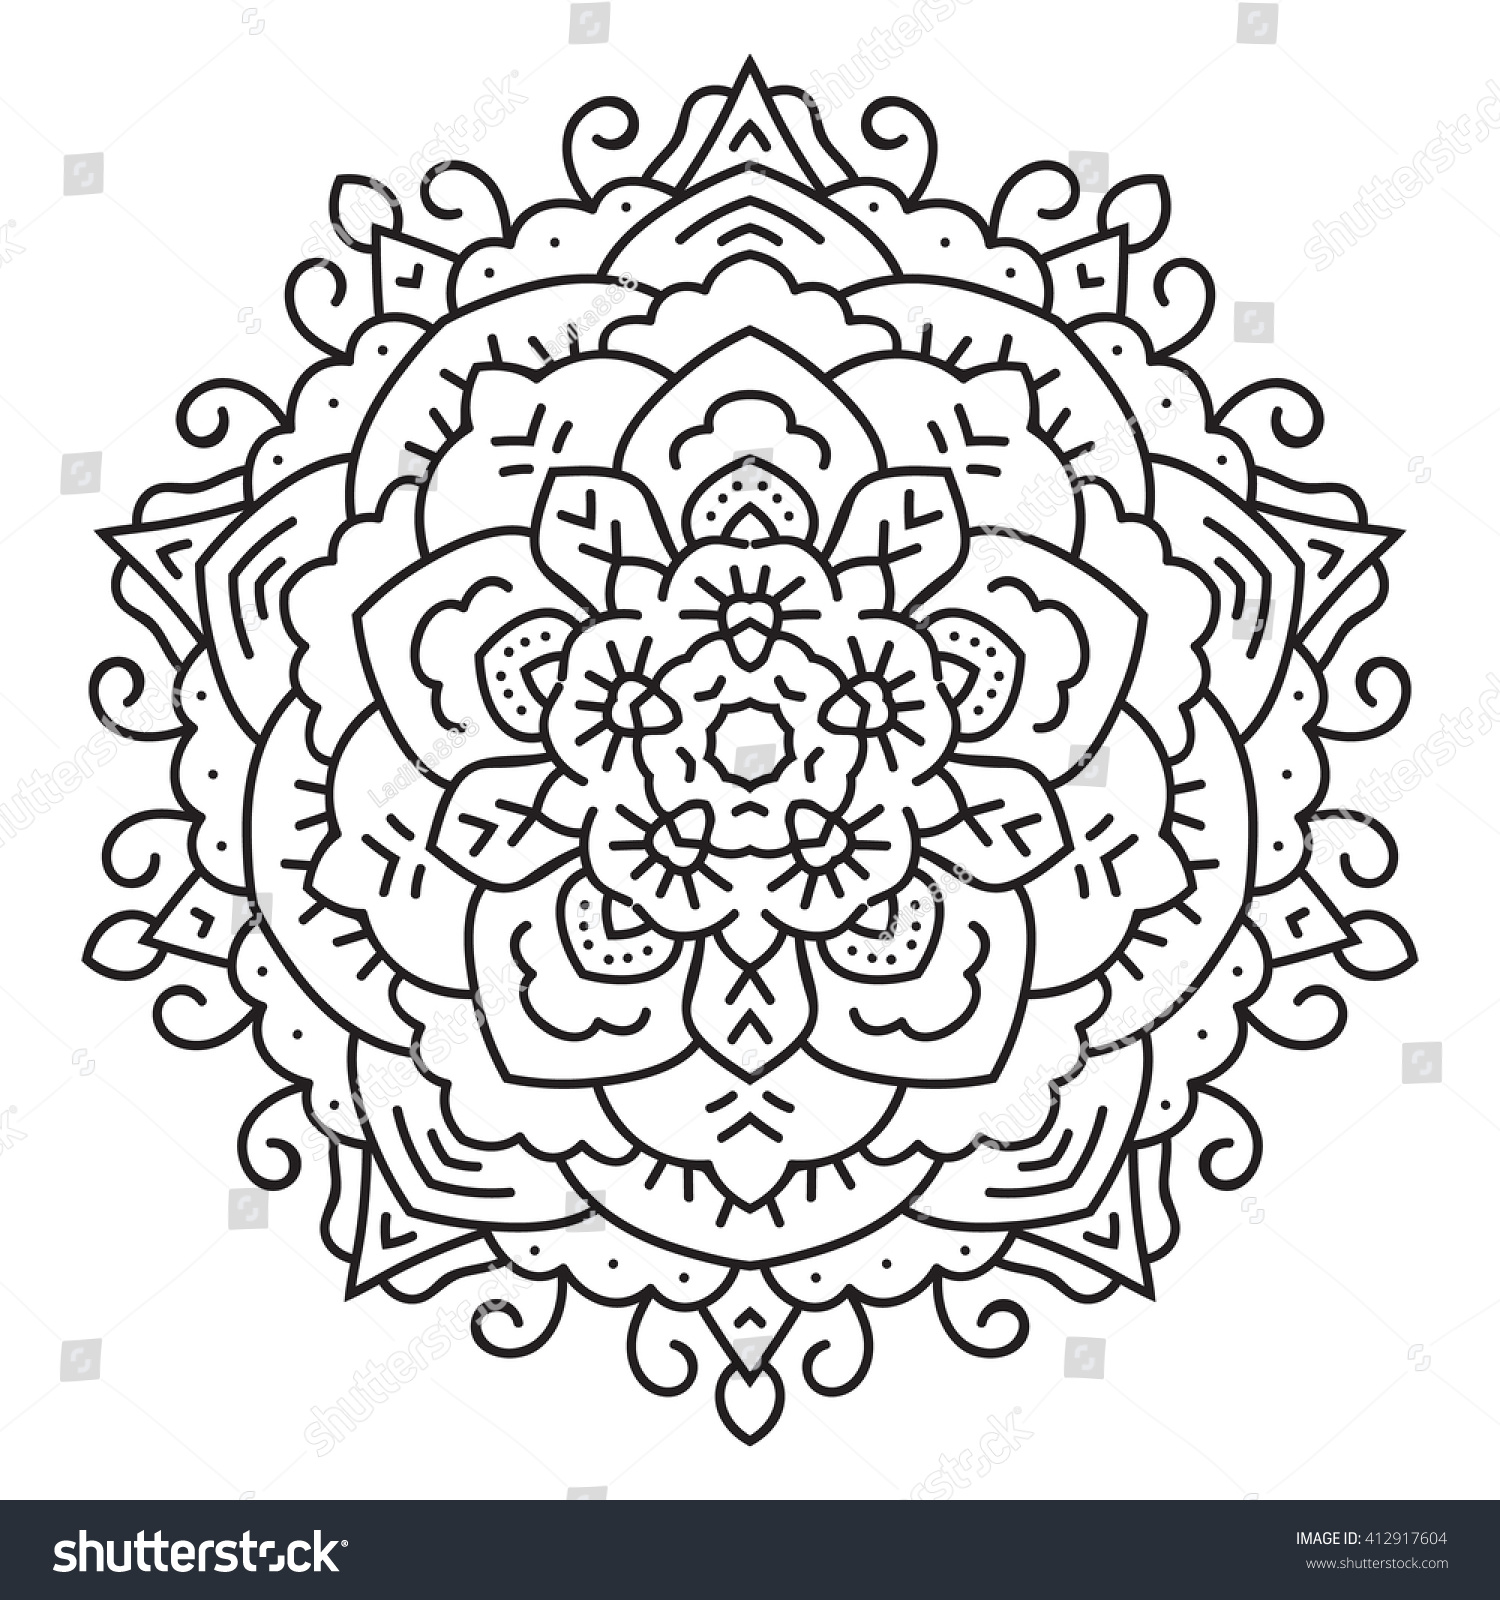 East Circular Pattern Mandala Coloring Page Stock Illustration ...